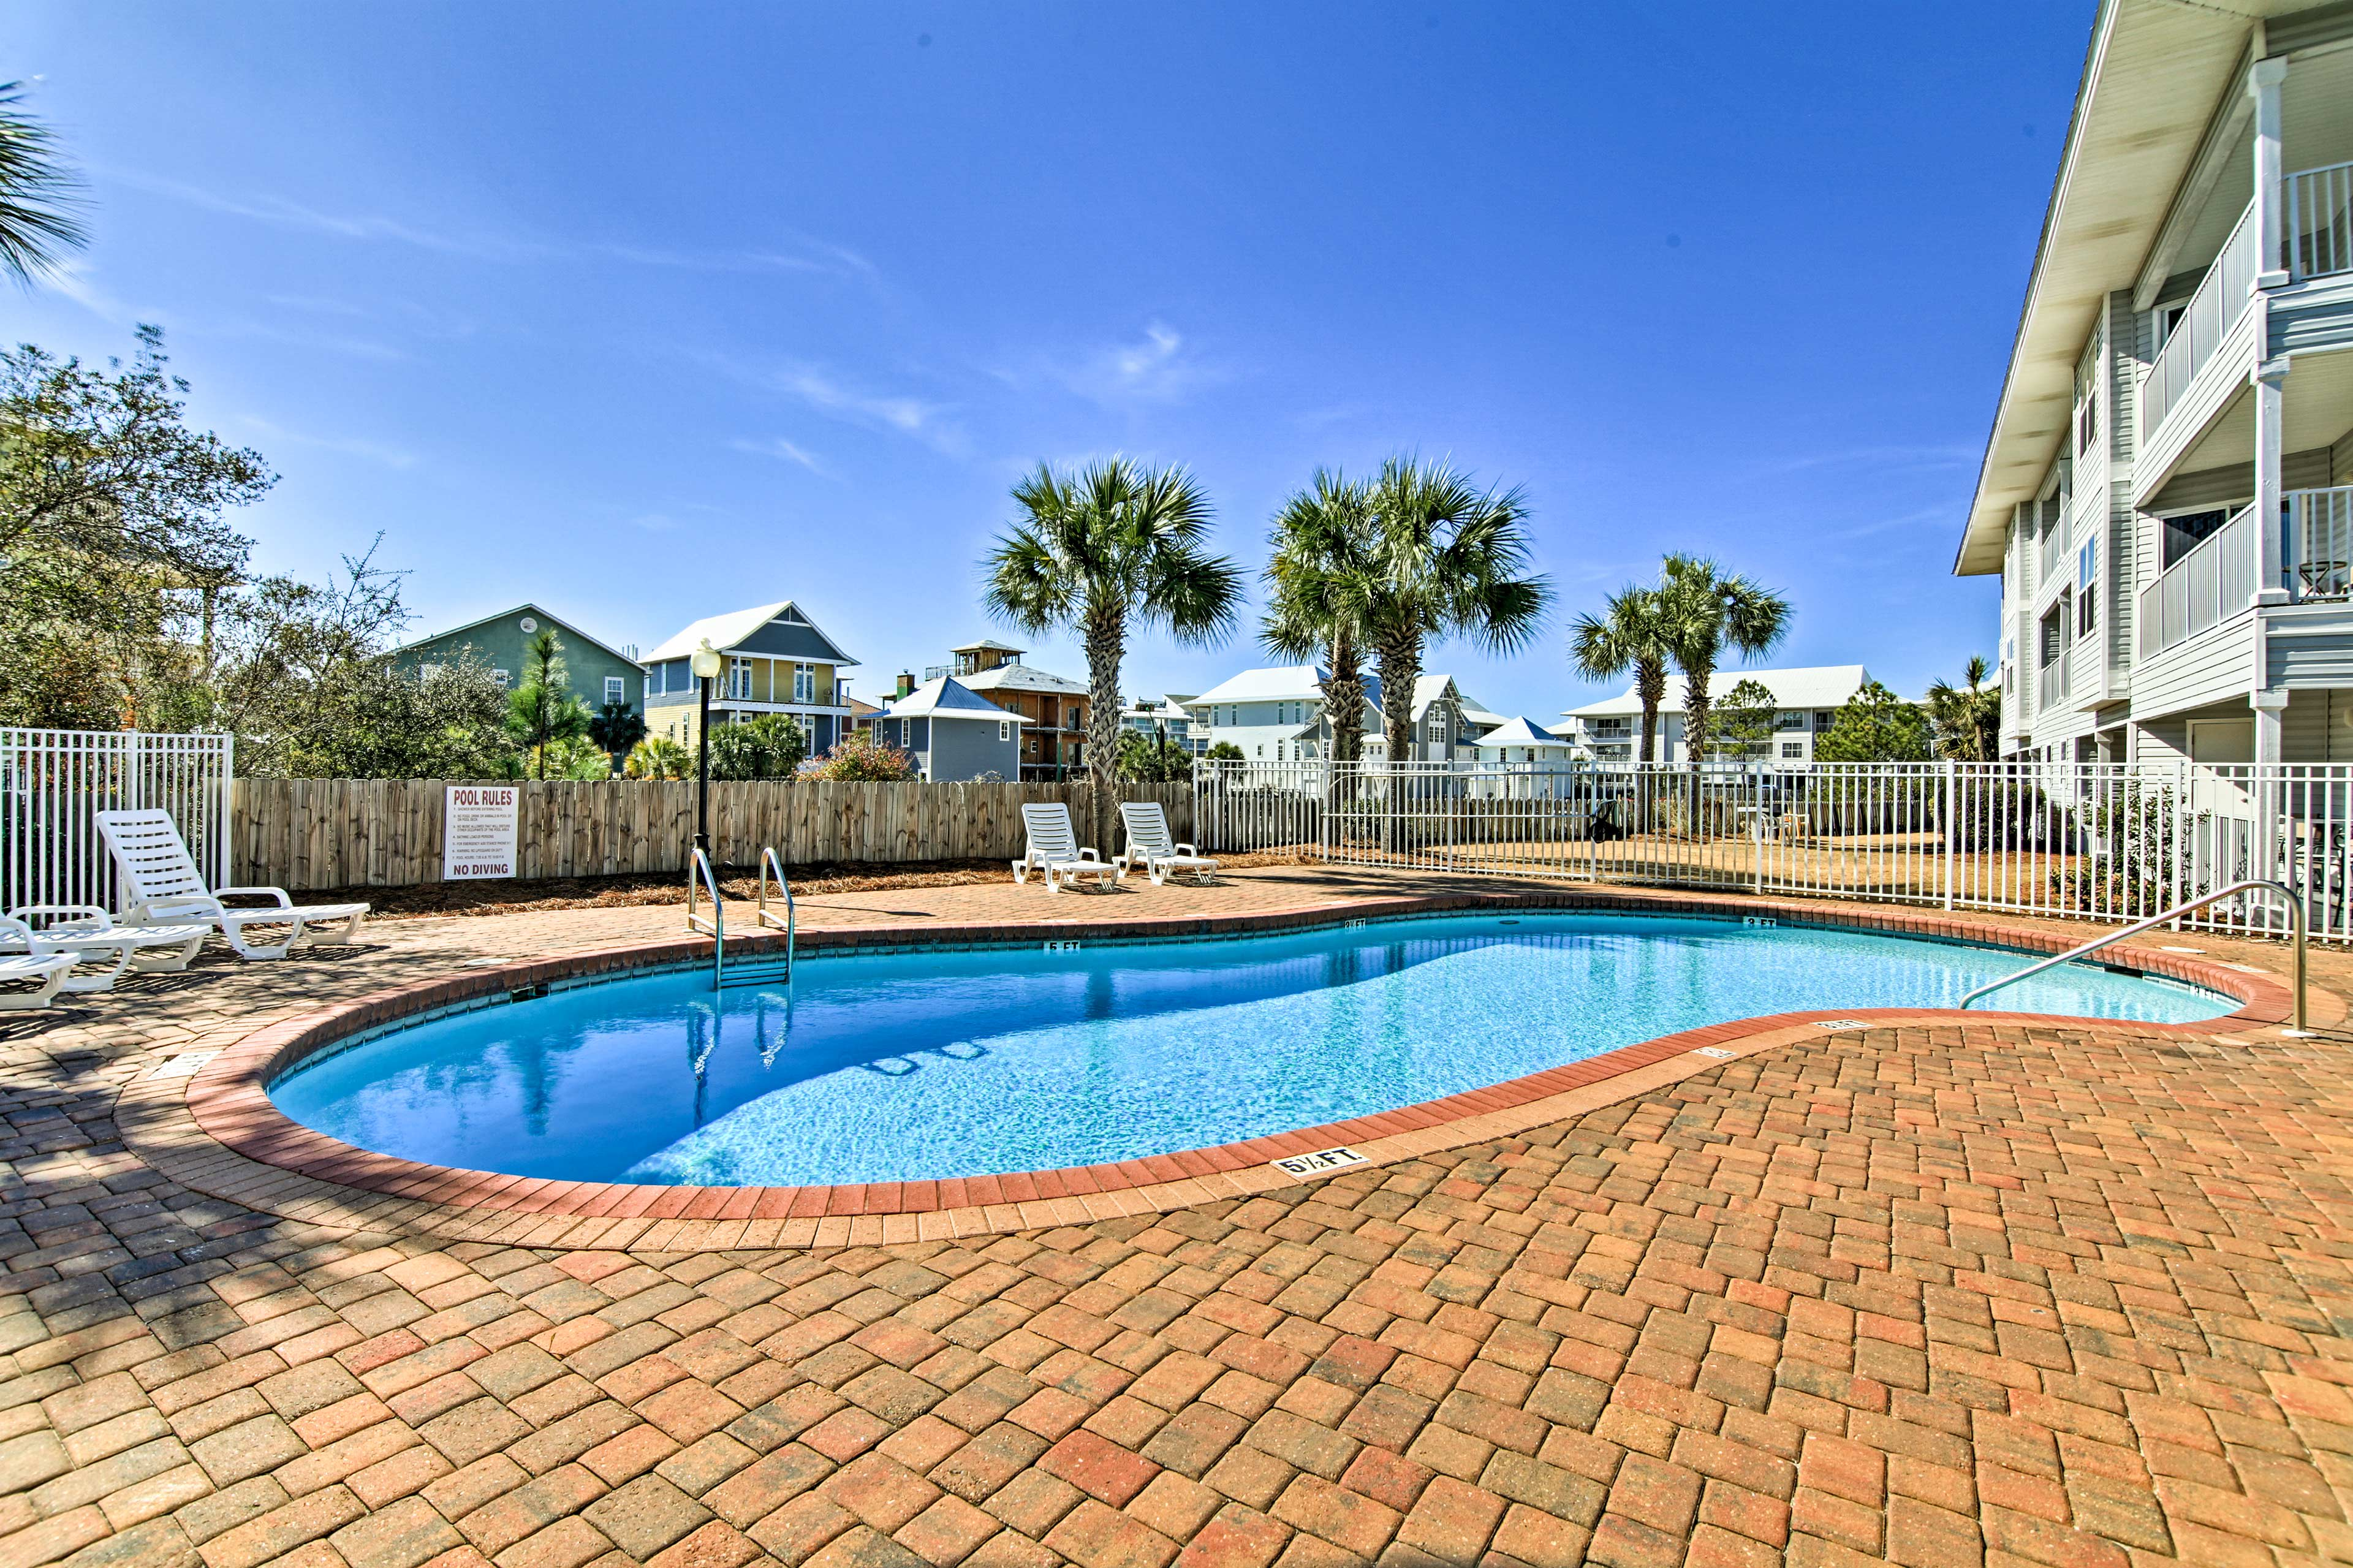 The Sunshine State awaits at this vacation rental condo in Seagrove Beach.